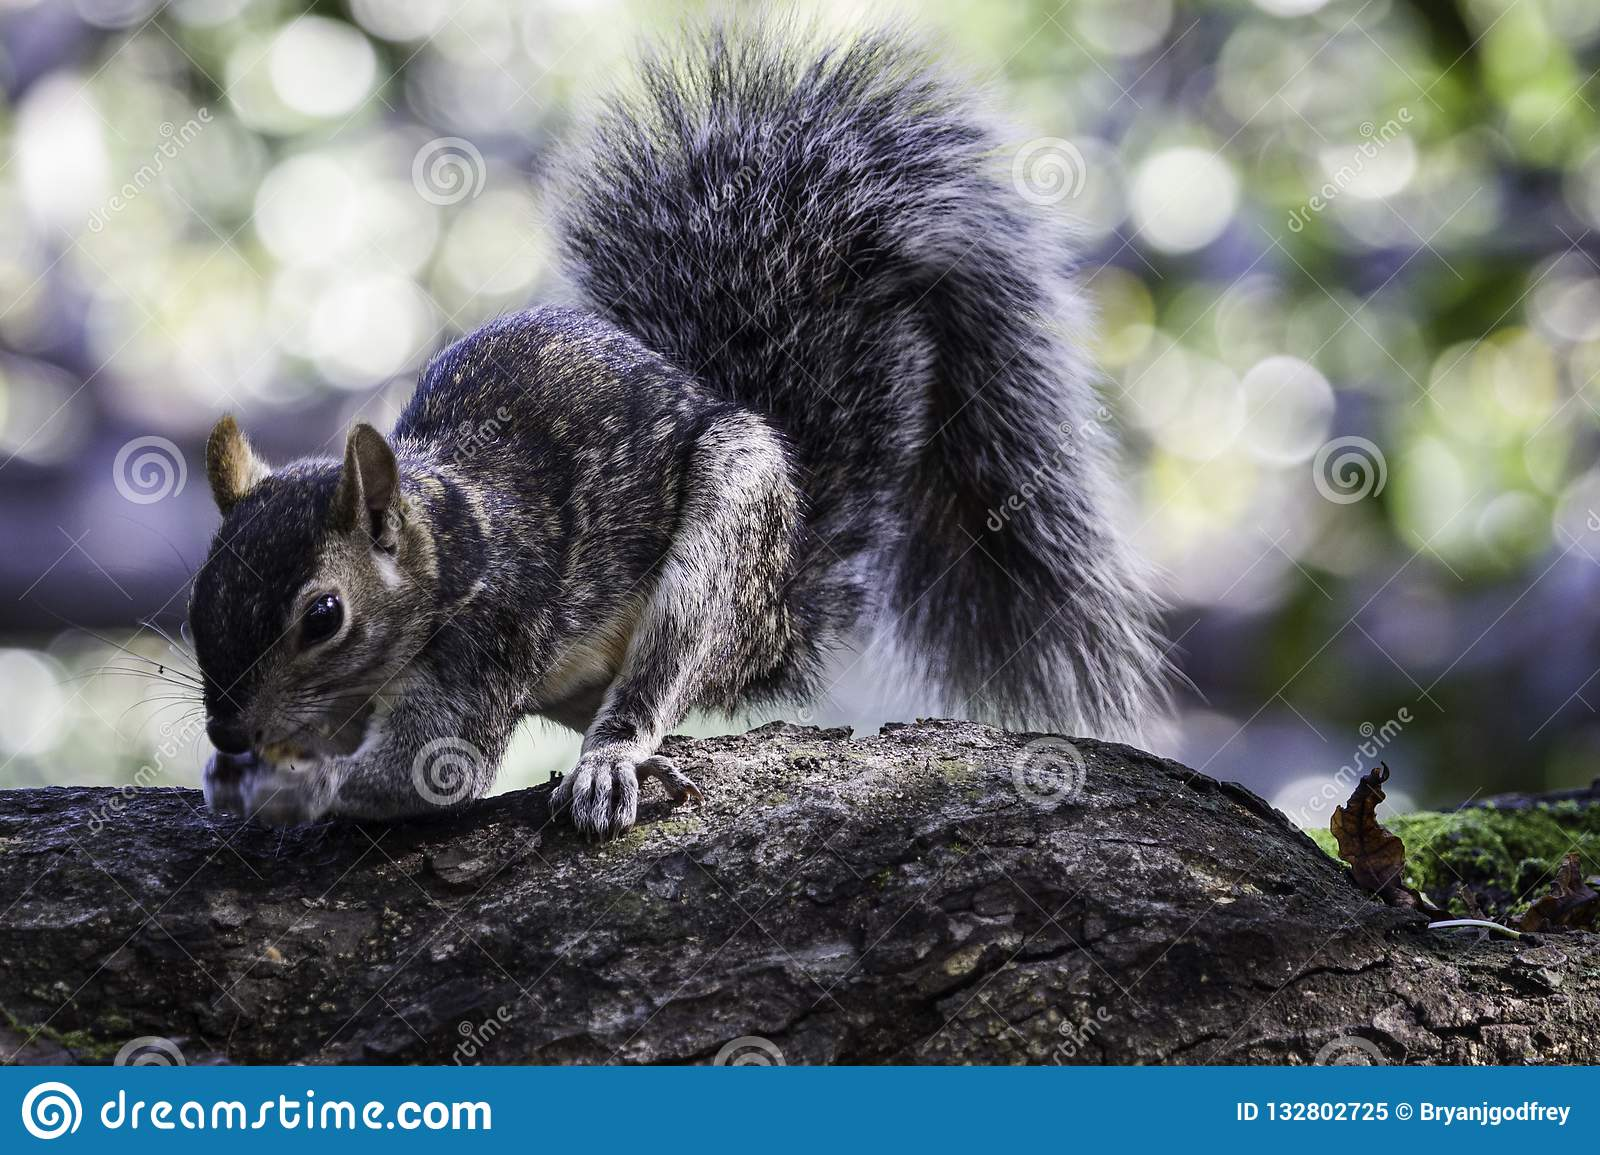 Gray squirrel collecting nuts on a large branch